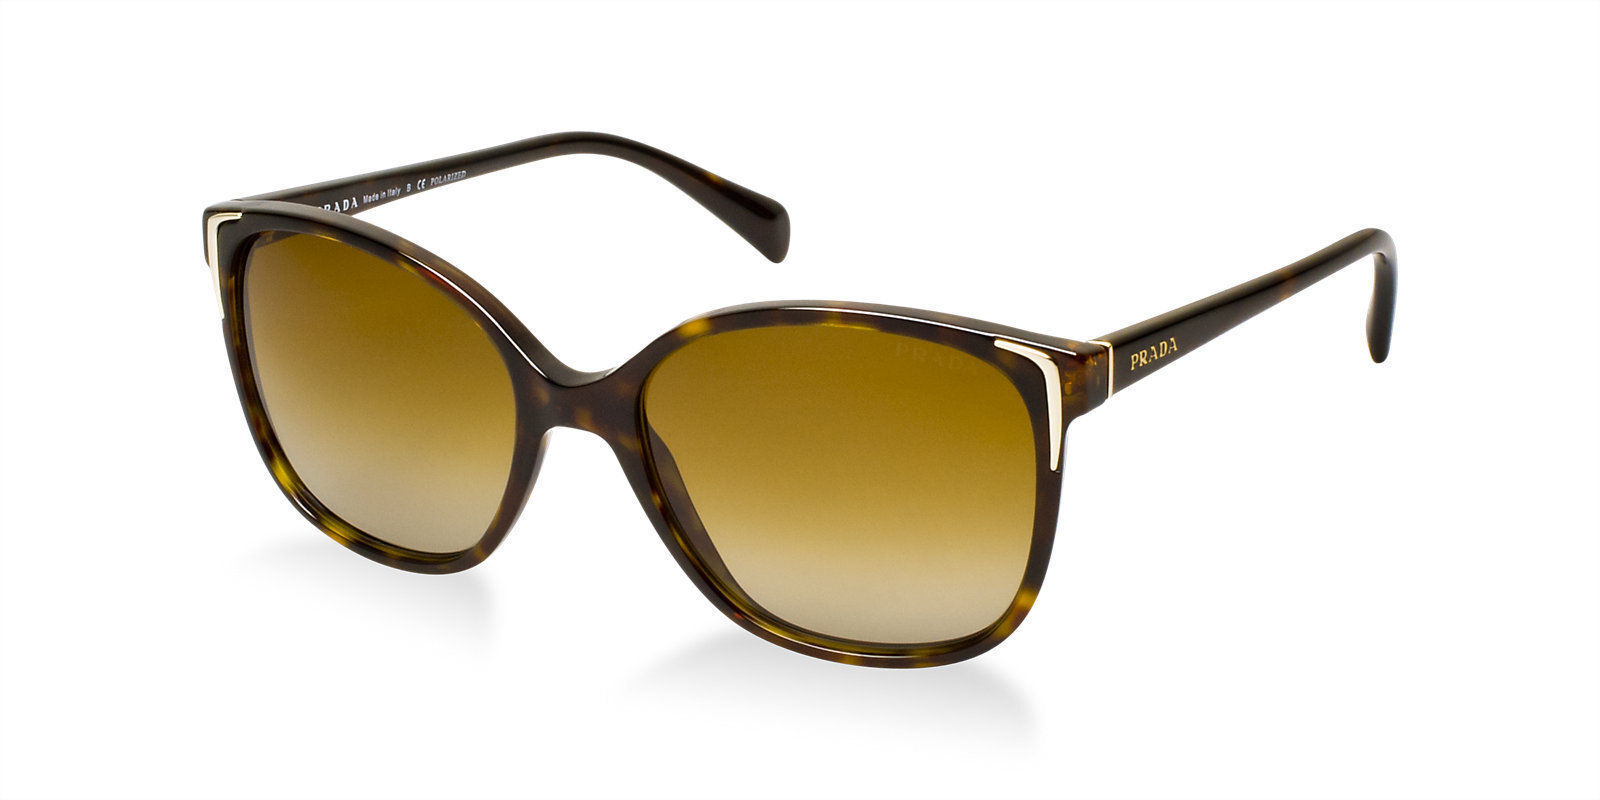 be0a4f0619f Unisex Sunglasses PRADA Pr01os Polarized 2au6e1 55 for sale online ...